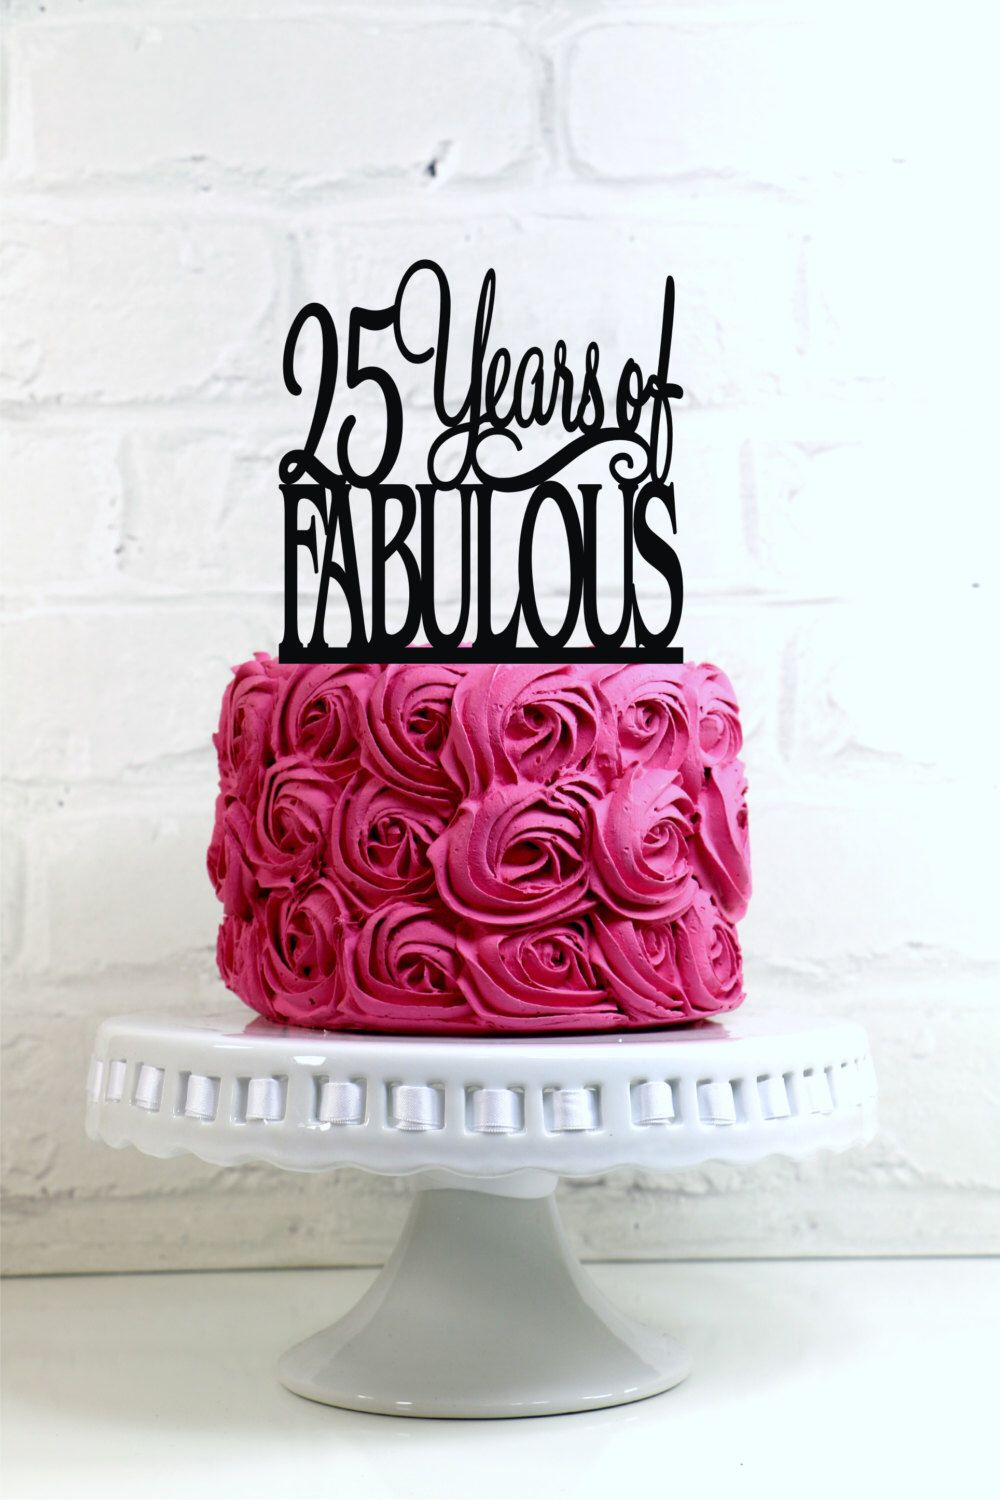 Swell 25Th Birthday Cakes Birthday Cake Topper 25 Years Of Fabulous 25Th Funny Birthday Cards Online Alyptdamsfinfo